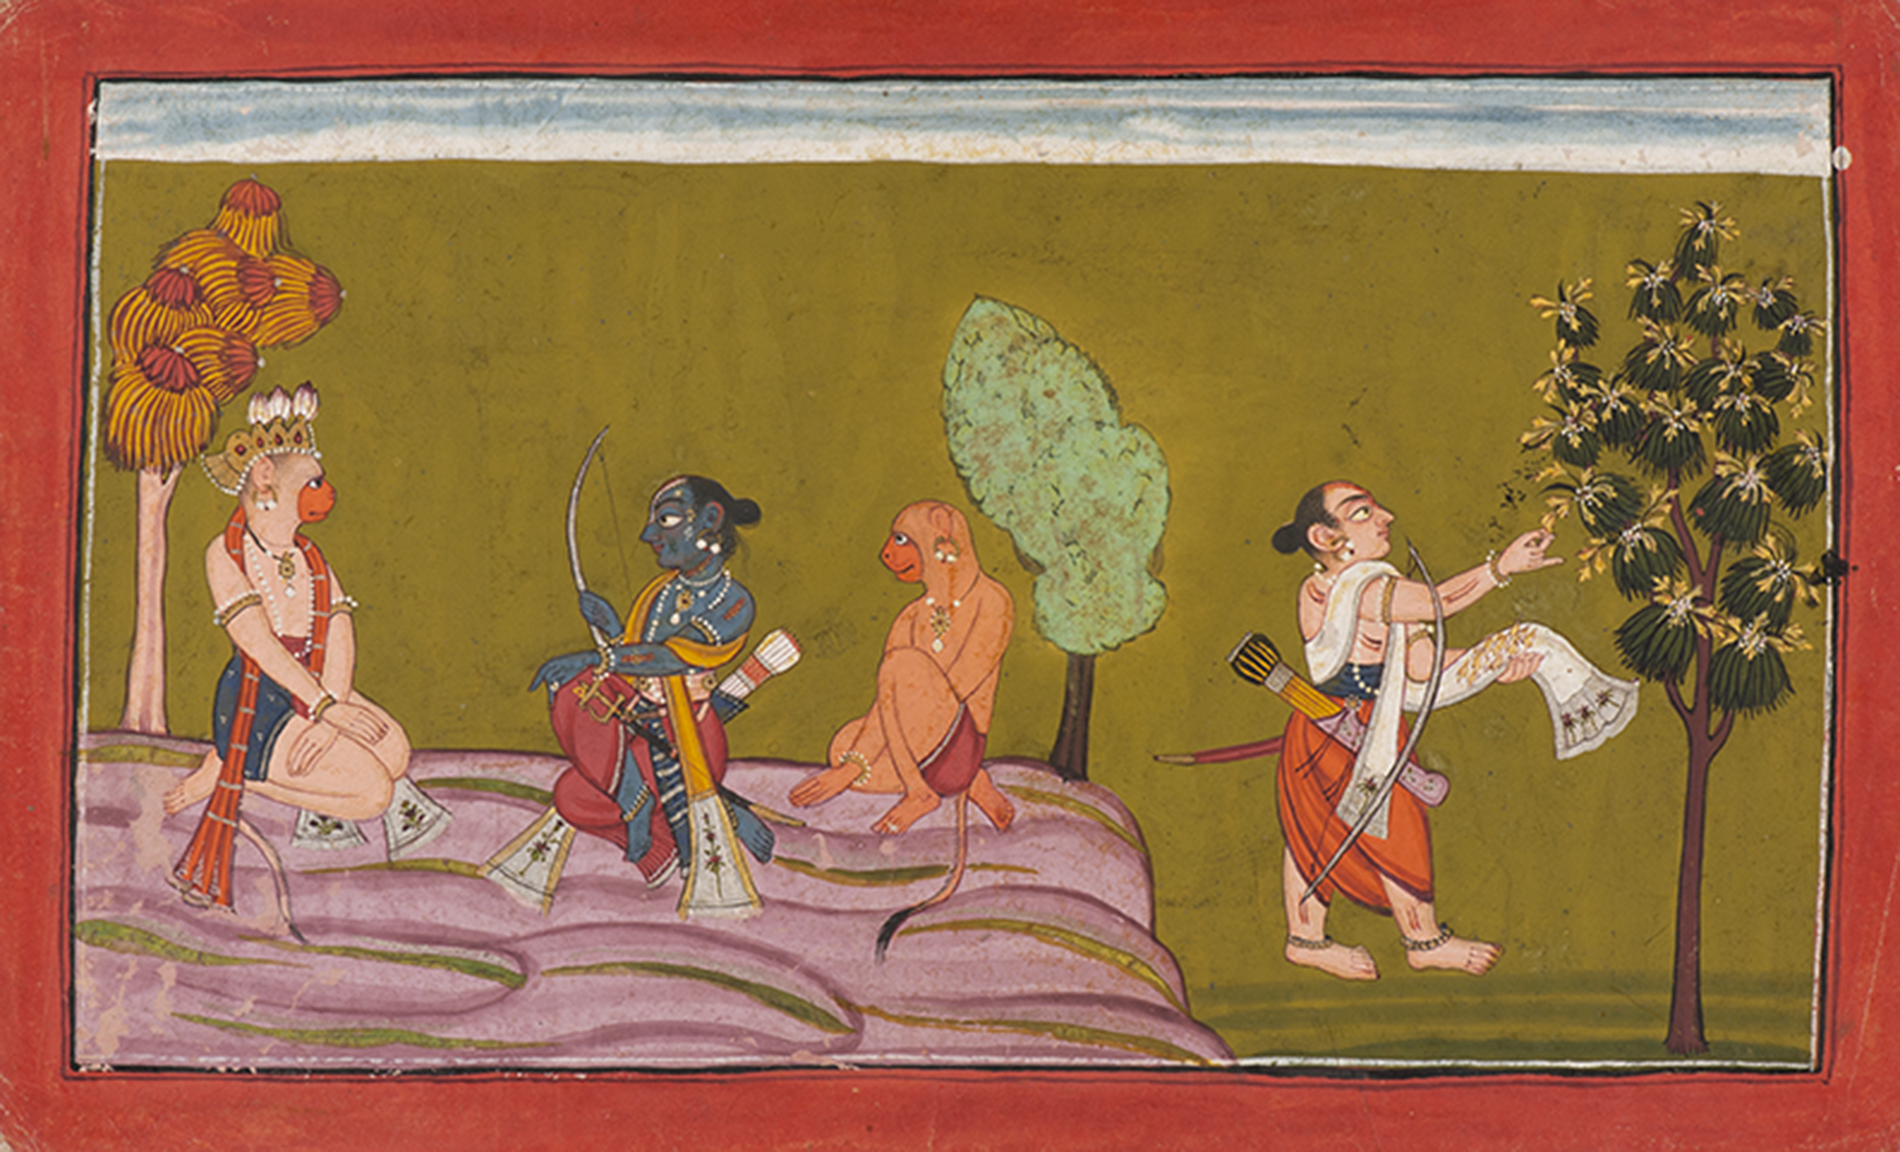 AN ILLUSTRATION TO THE SHANGRI RAMAYANA